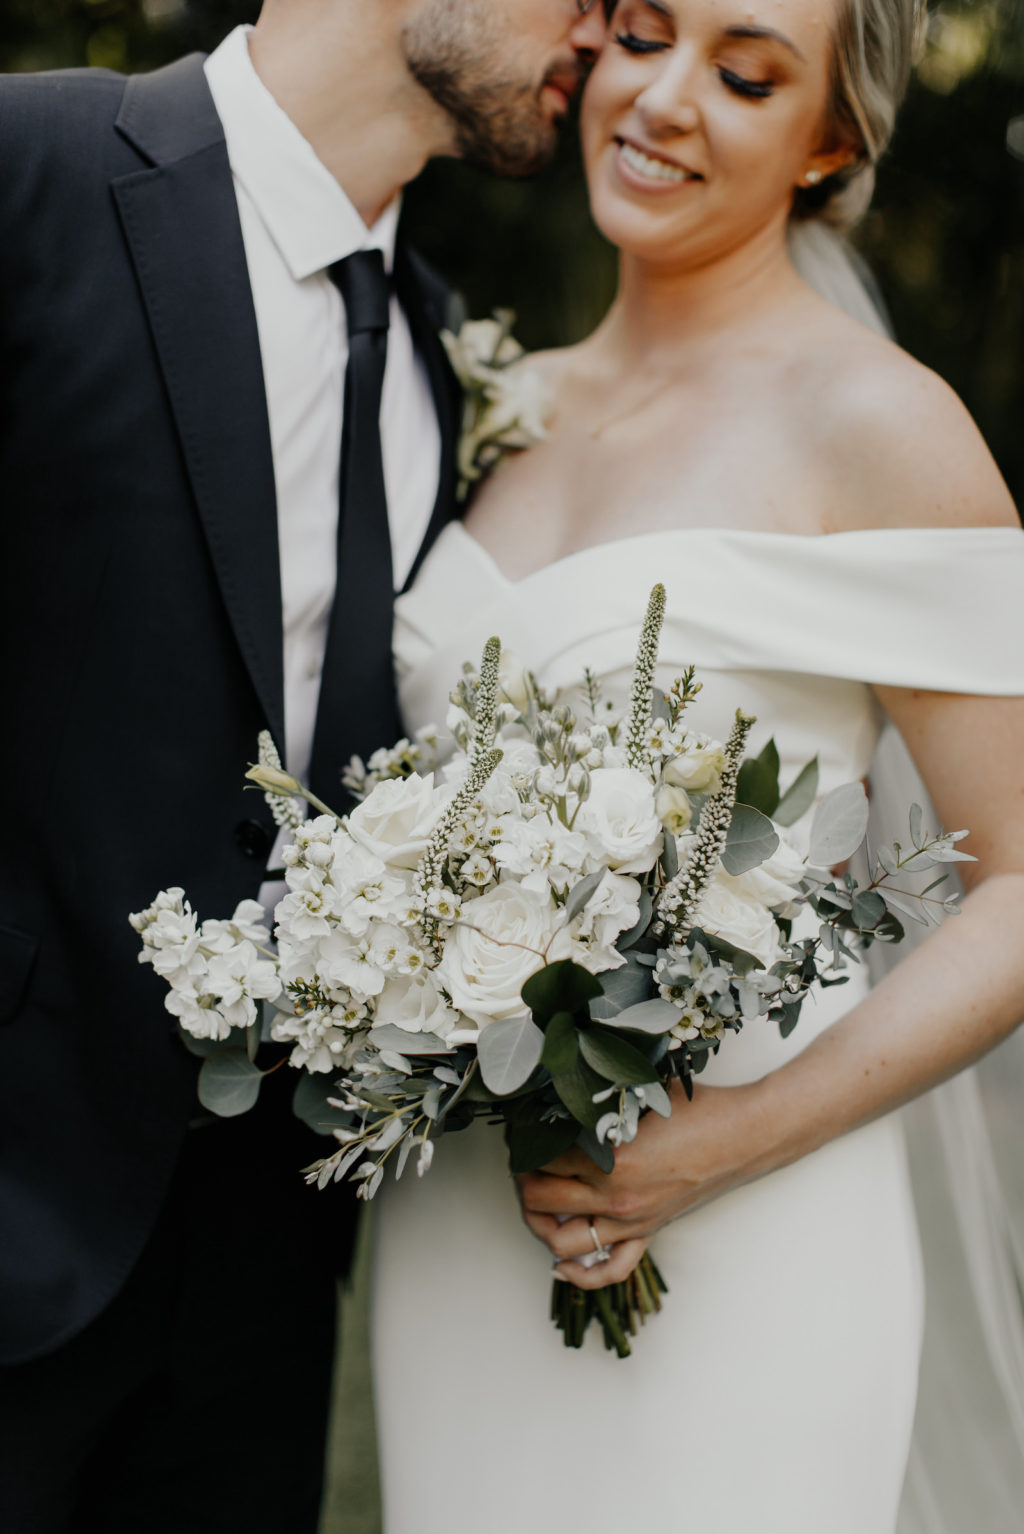 Classic Florida Bride and Groom, Bride Holding Delicate White Floral Bouquet with Greenery, Wearing Fitted Off The Shoulder BHLDN Wedding Dress, Groom in Classic Black Suit and Tie   Tampa Bay Hair and Makeup Artist Femme Akoi Beauty Studios